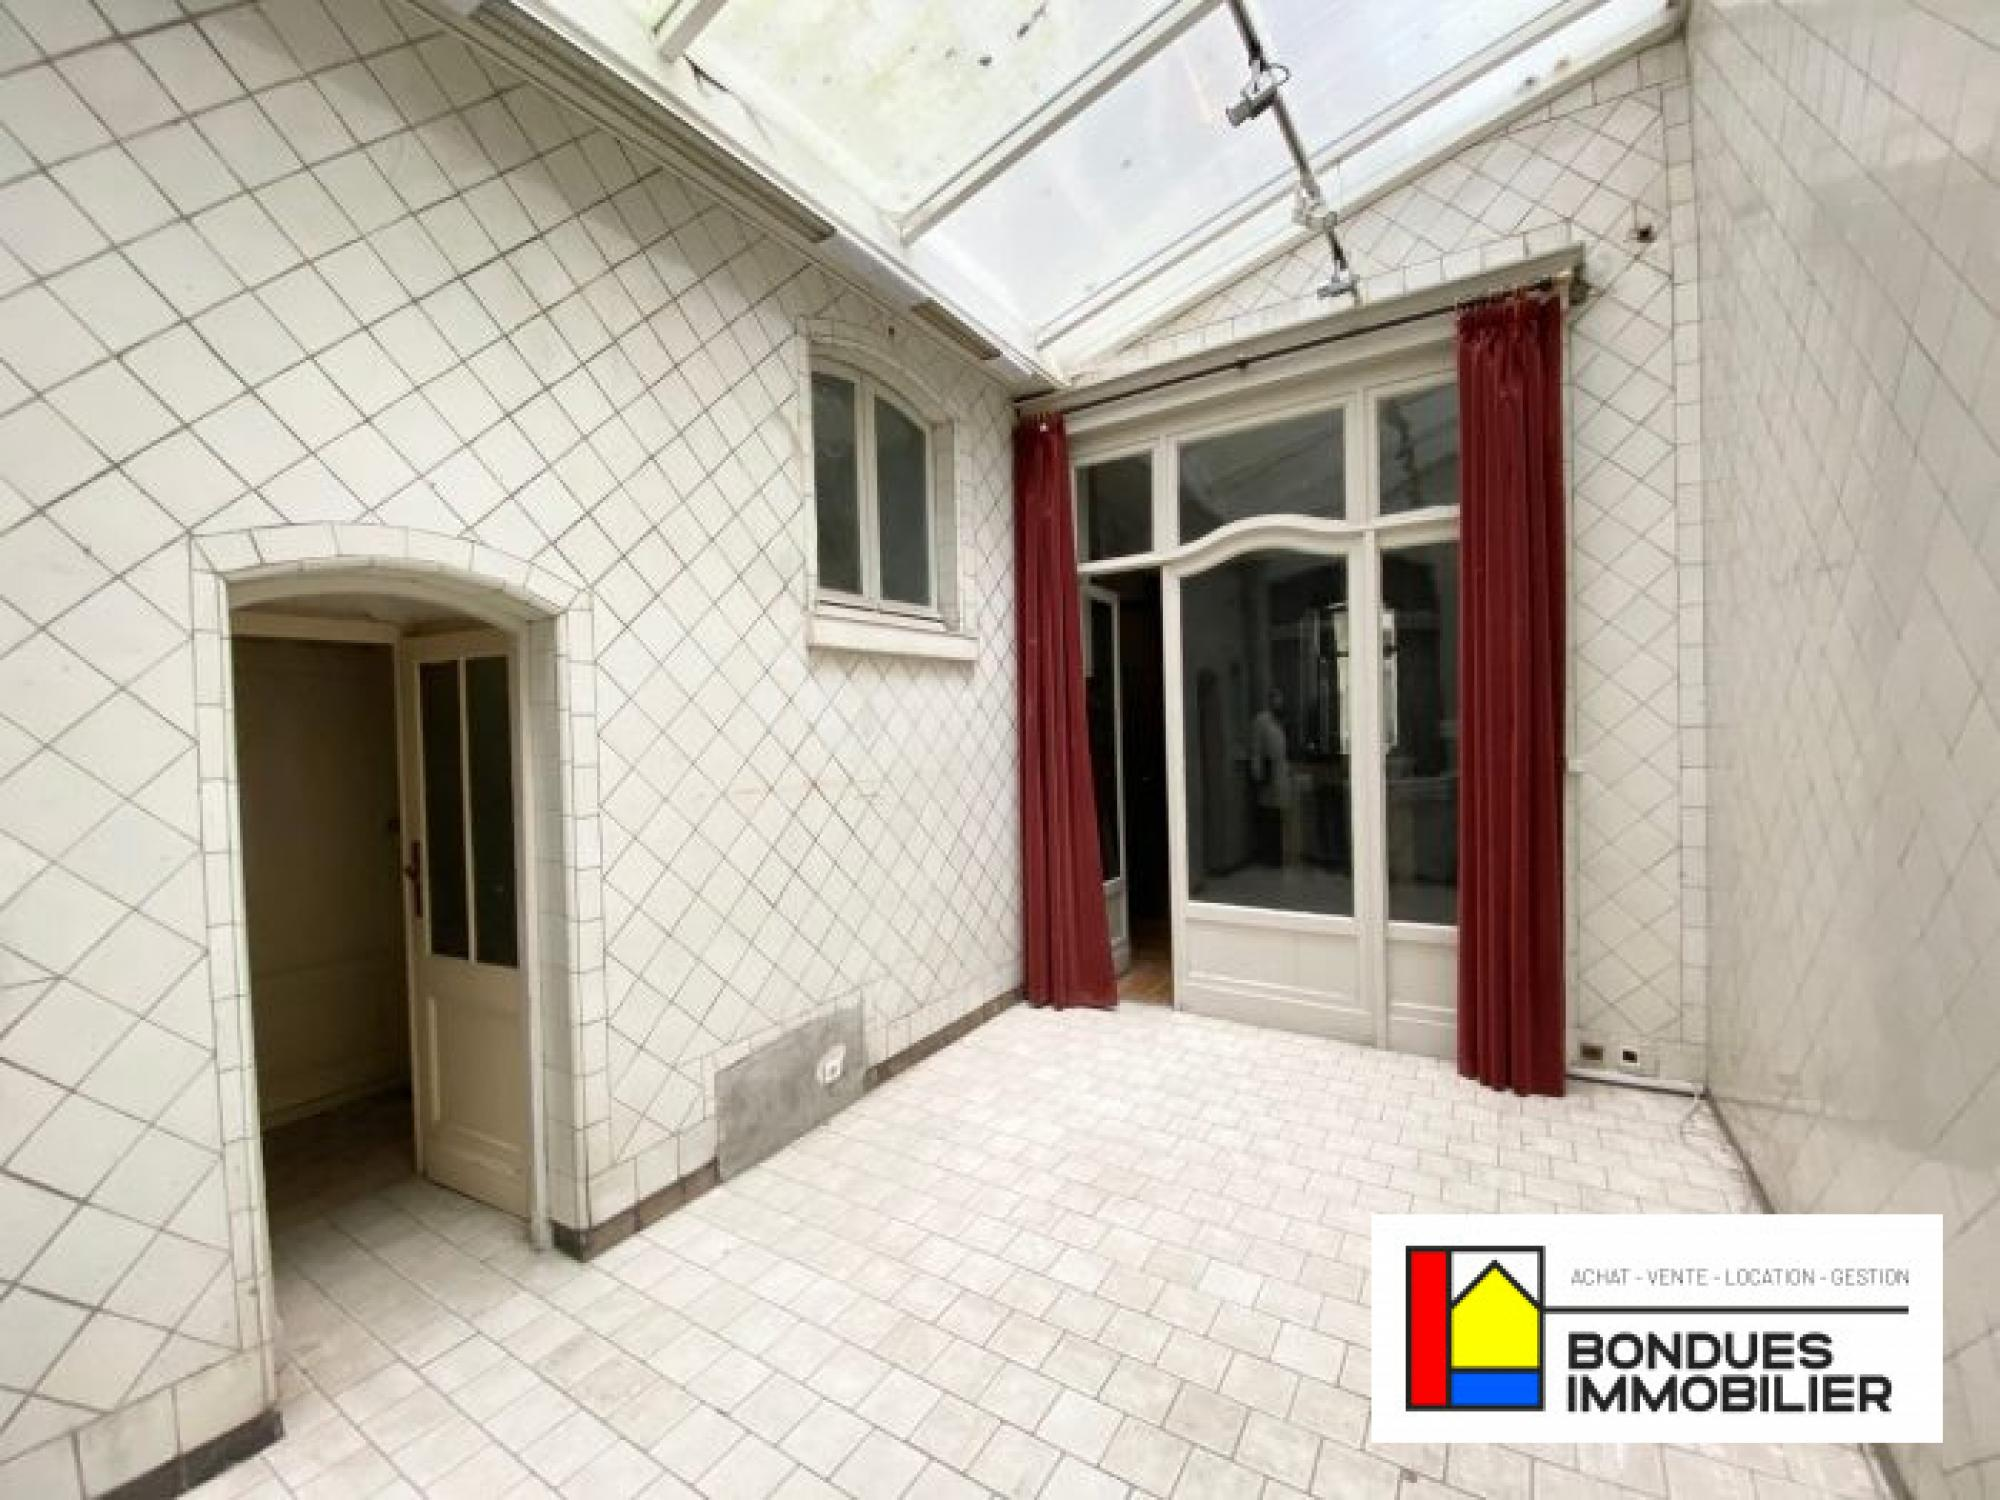 location immobilier pro lille refLP070 (1)